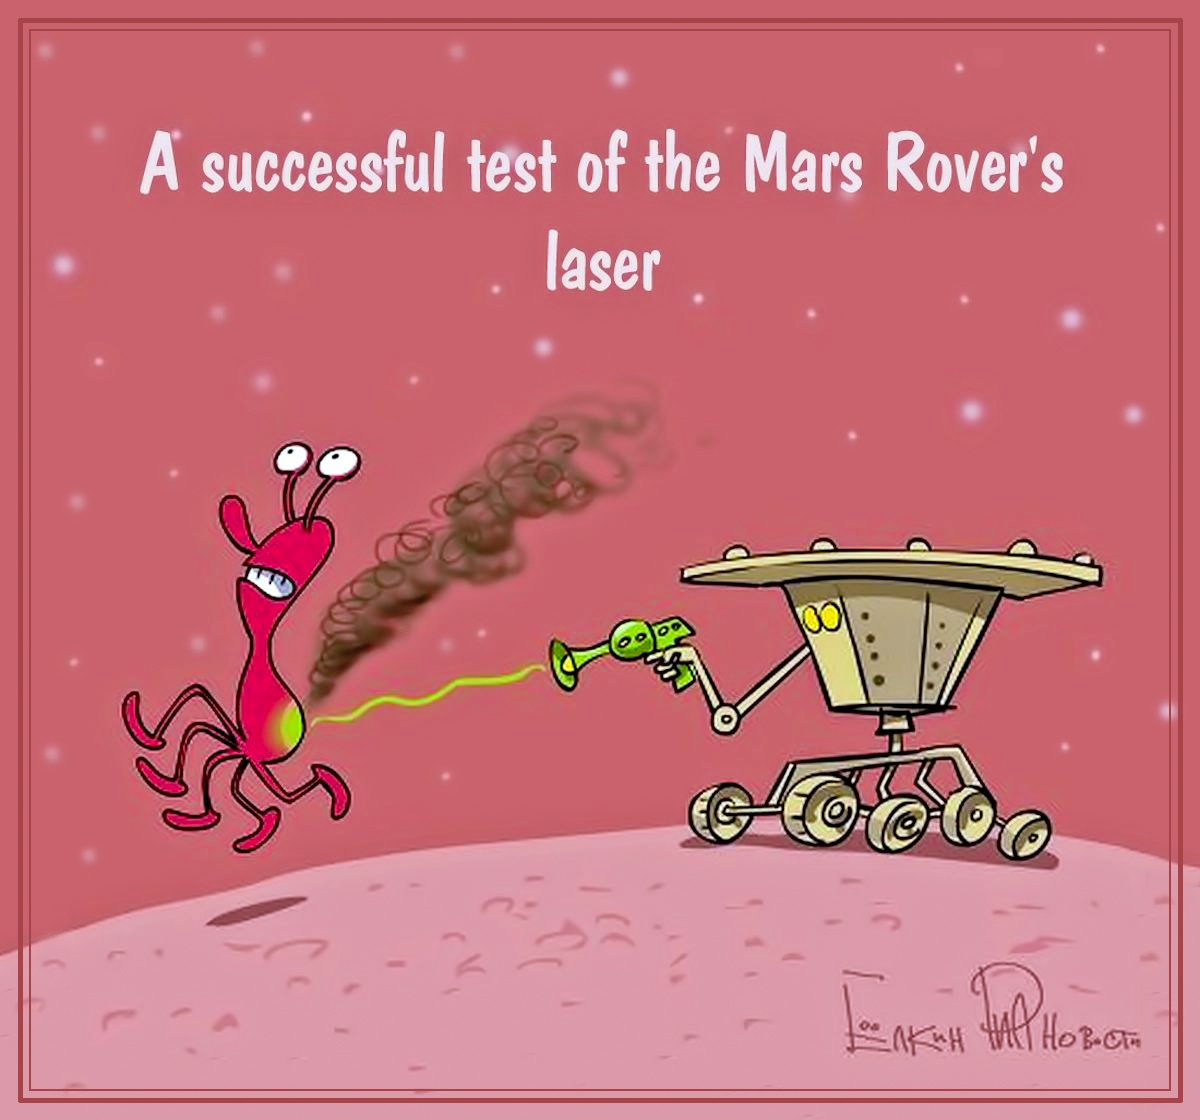 Sergei Yolkin. Life on Mars. Now, We Have a Laser! 2012